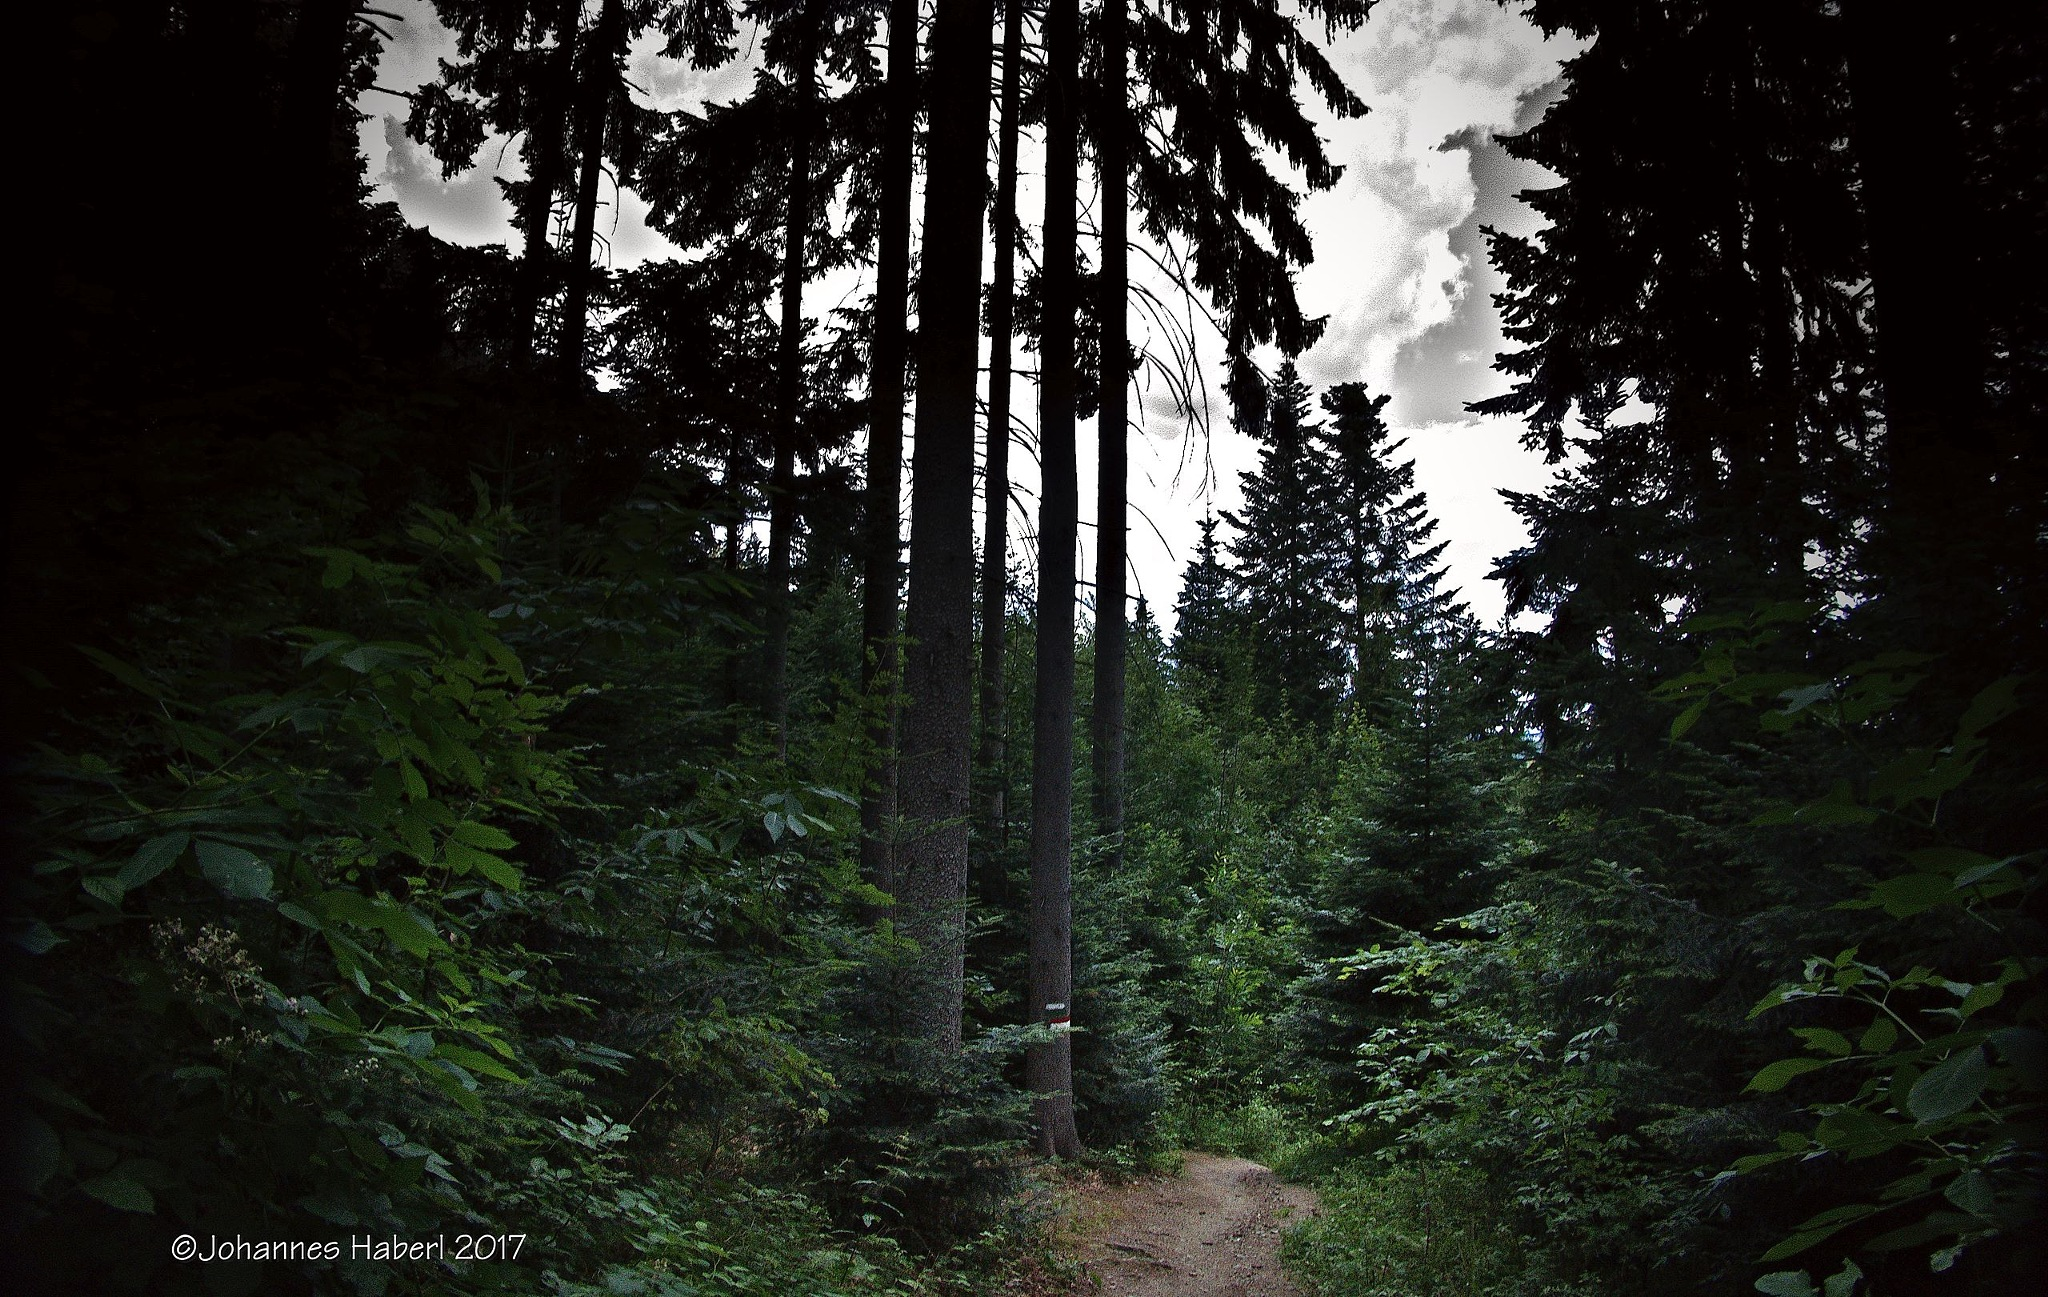 through the forest by Johannes Haberl